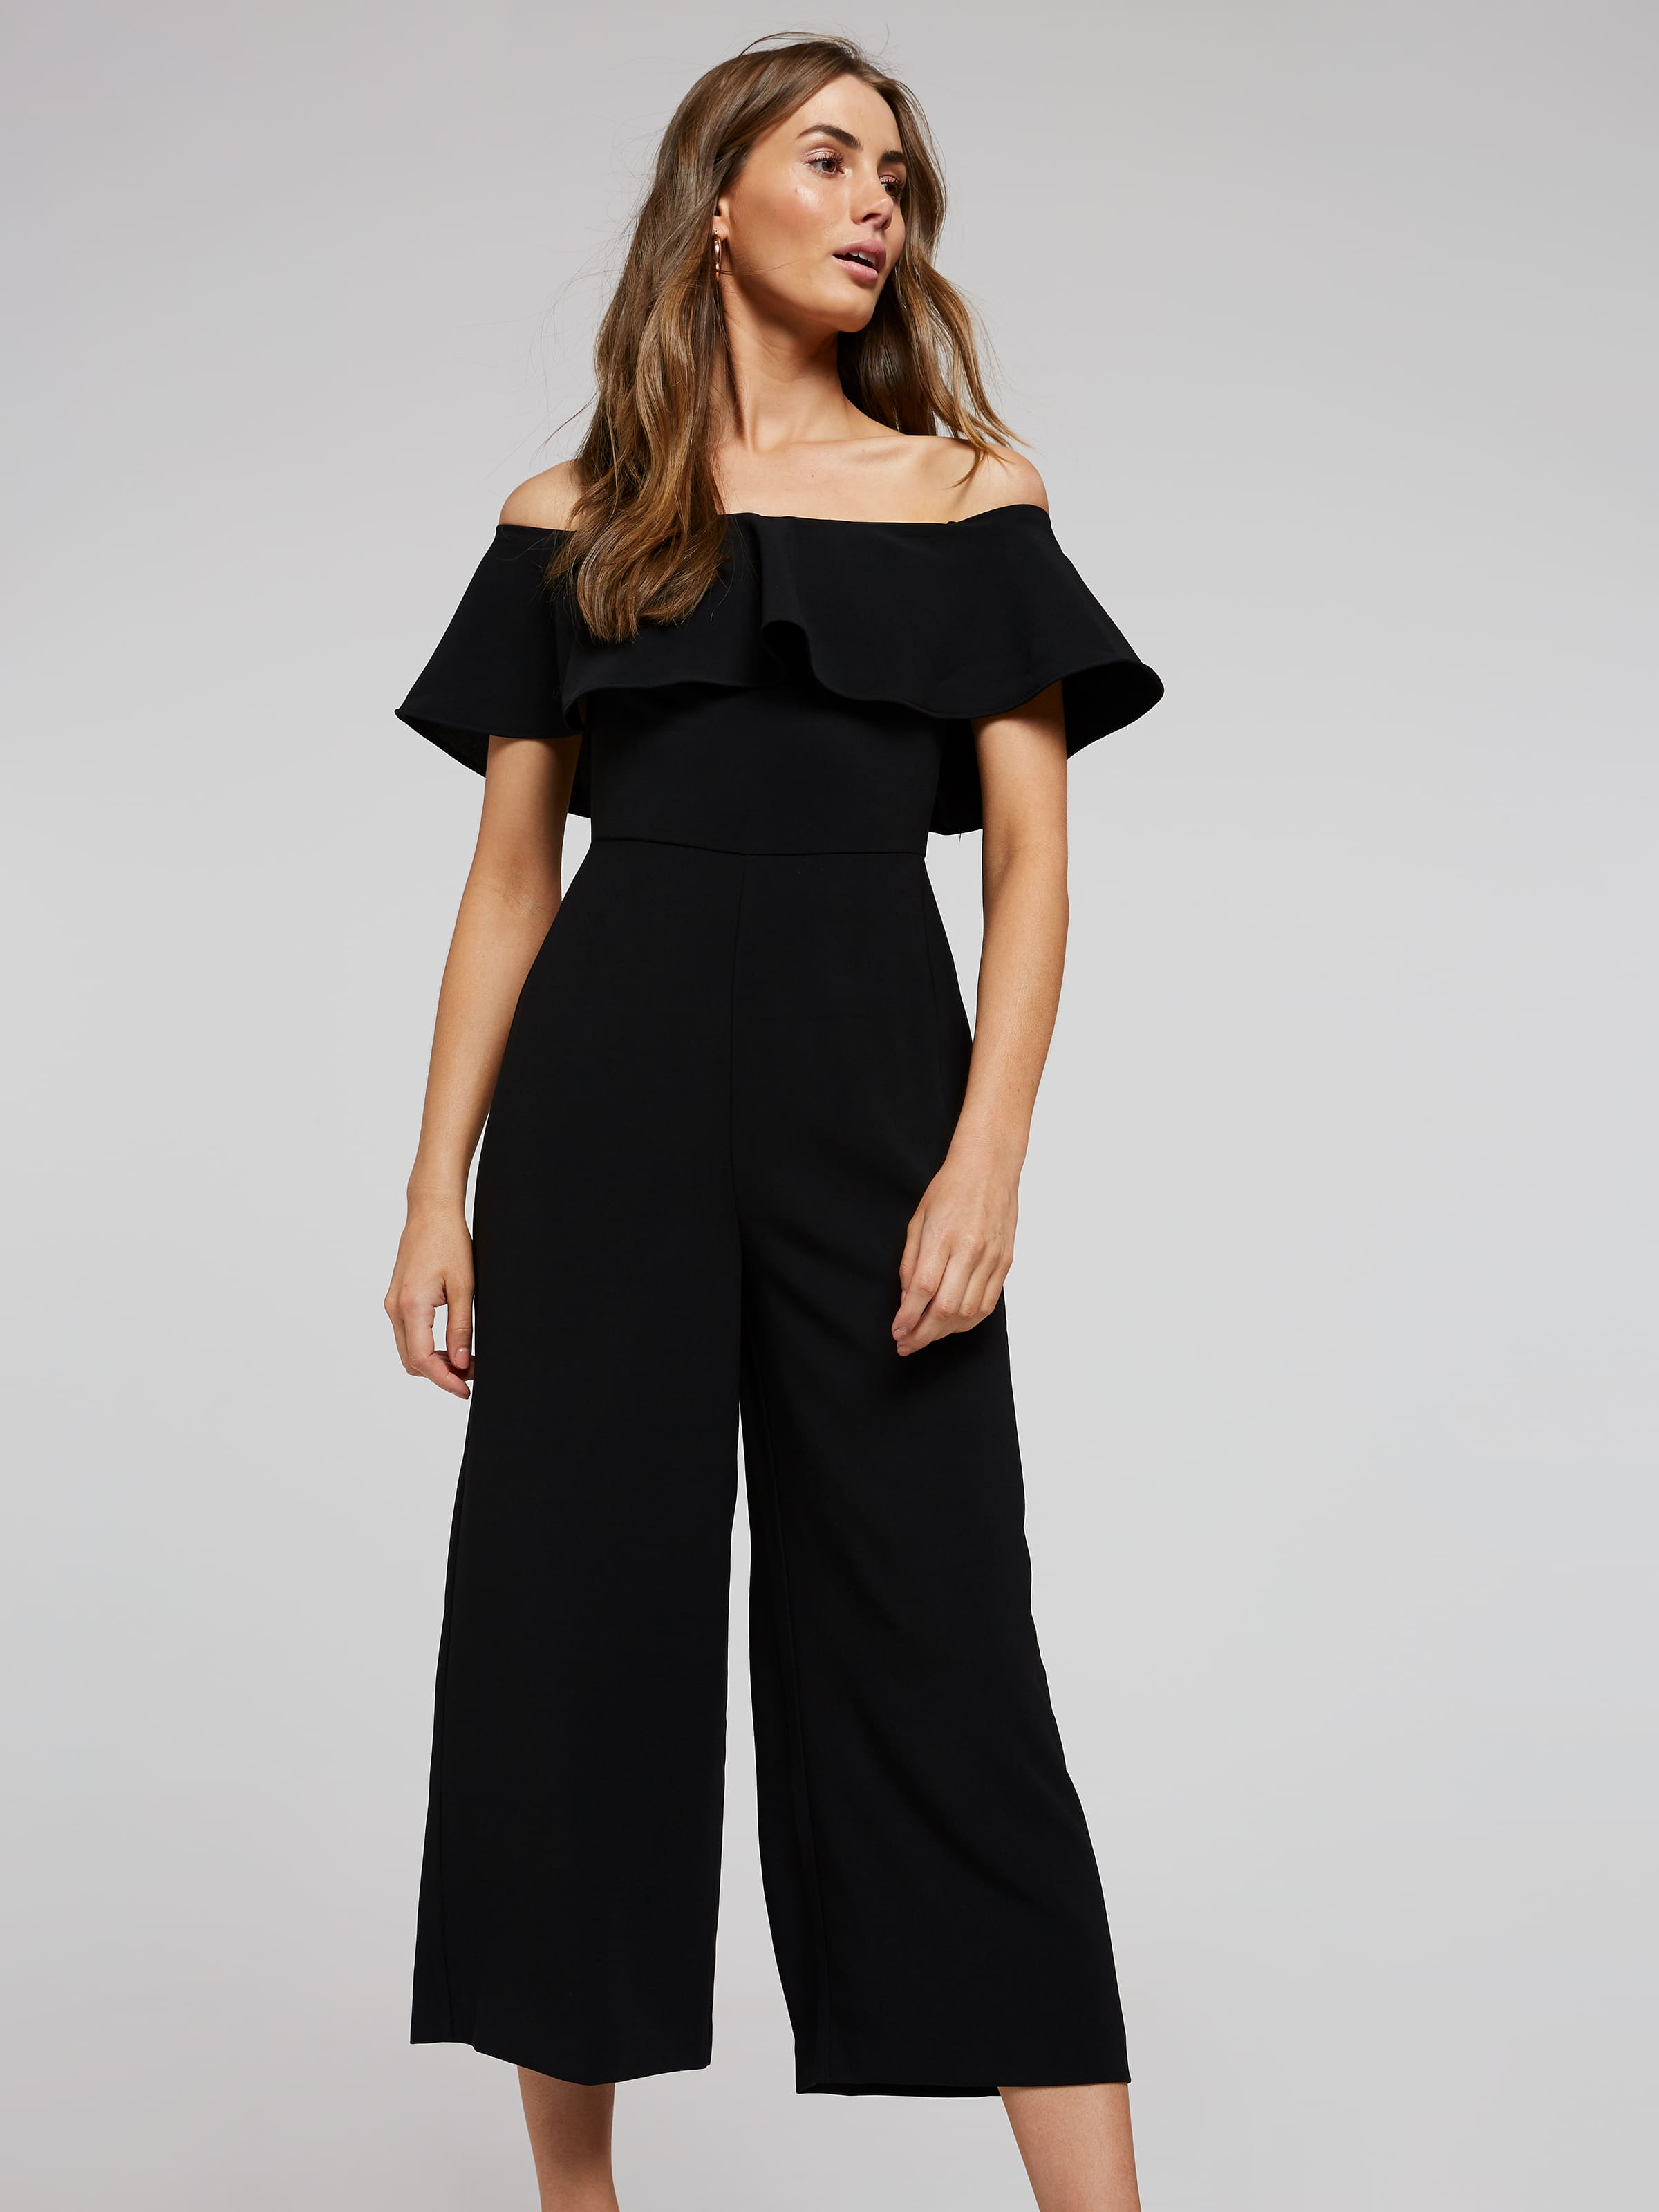 f77a1e4aeb3c Image for Elise Spliced Strapless Jumpsuit from Portmans Online ...